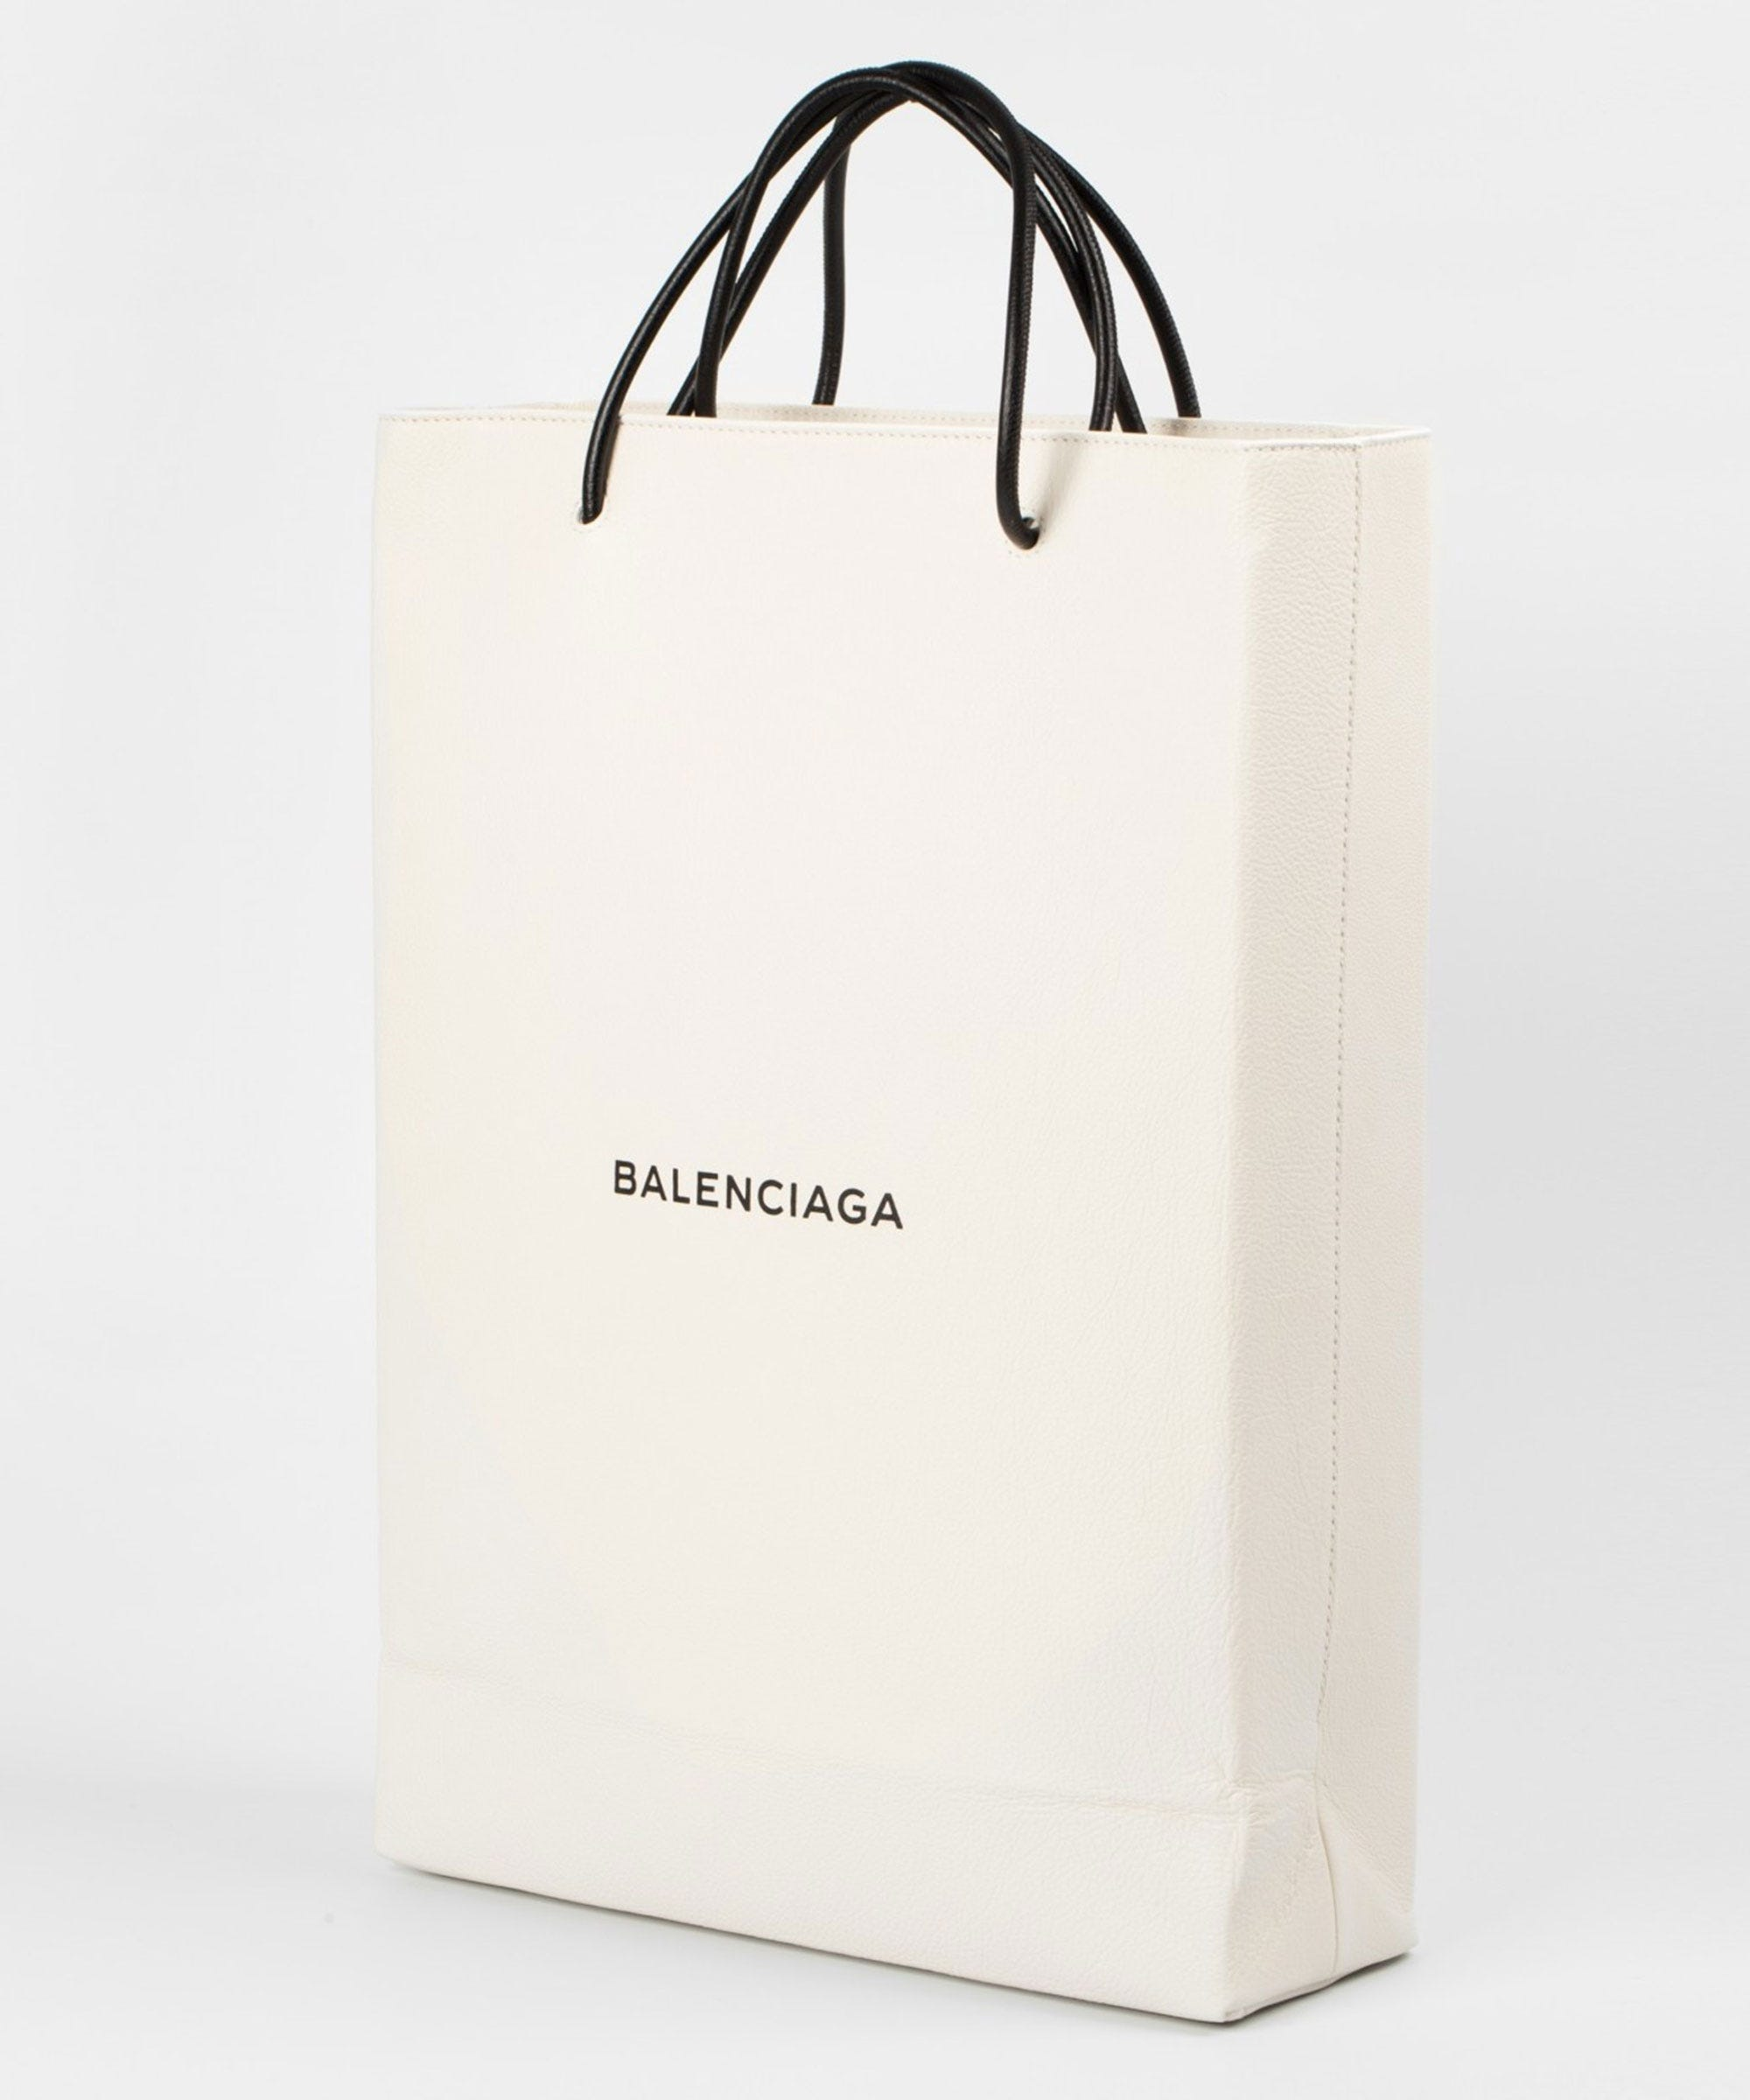 0cb81b0b5a Balenciaga Shopping Bag Leather Colette